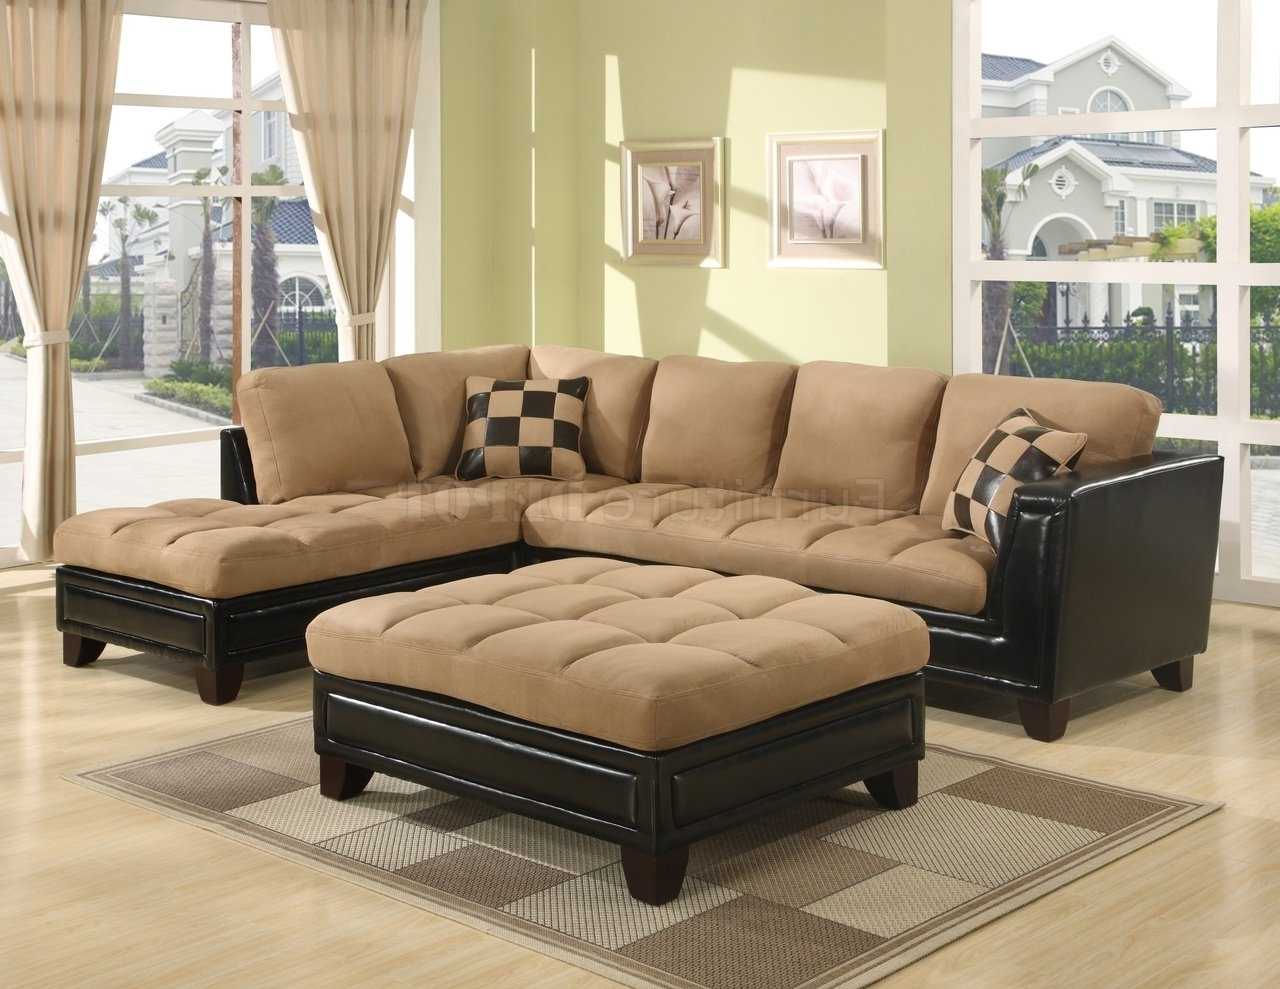 Latest Leather And Suede Sectional Sofas For Leather Suede Sectional Sofa 99 With Leather Suede Sectional Sofa (View 11 of 20)